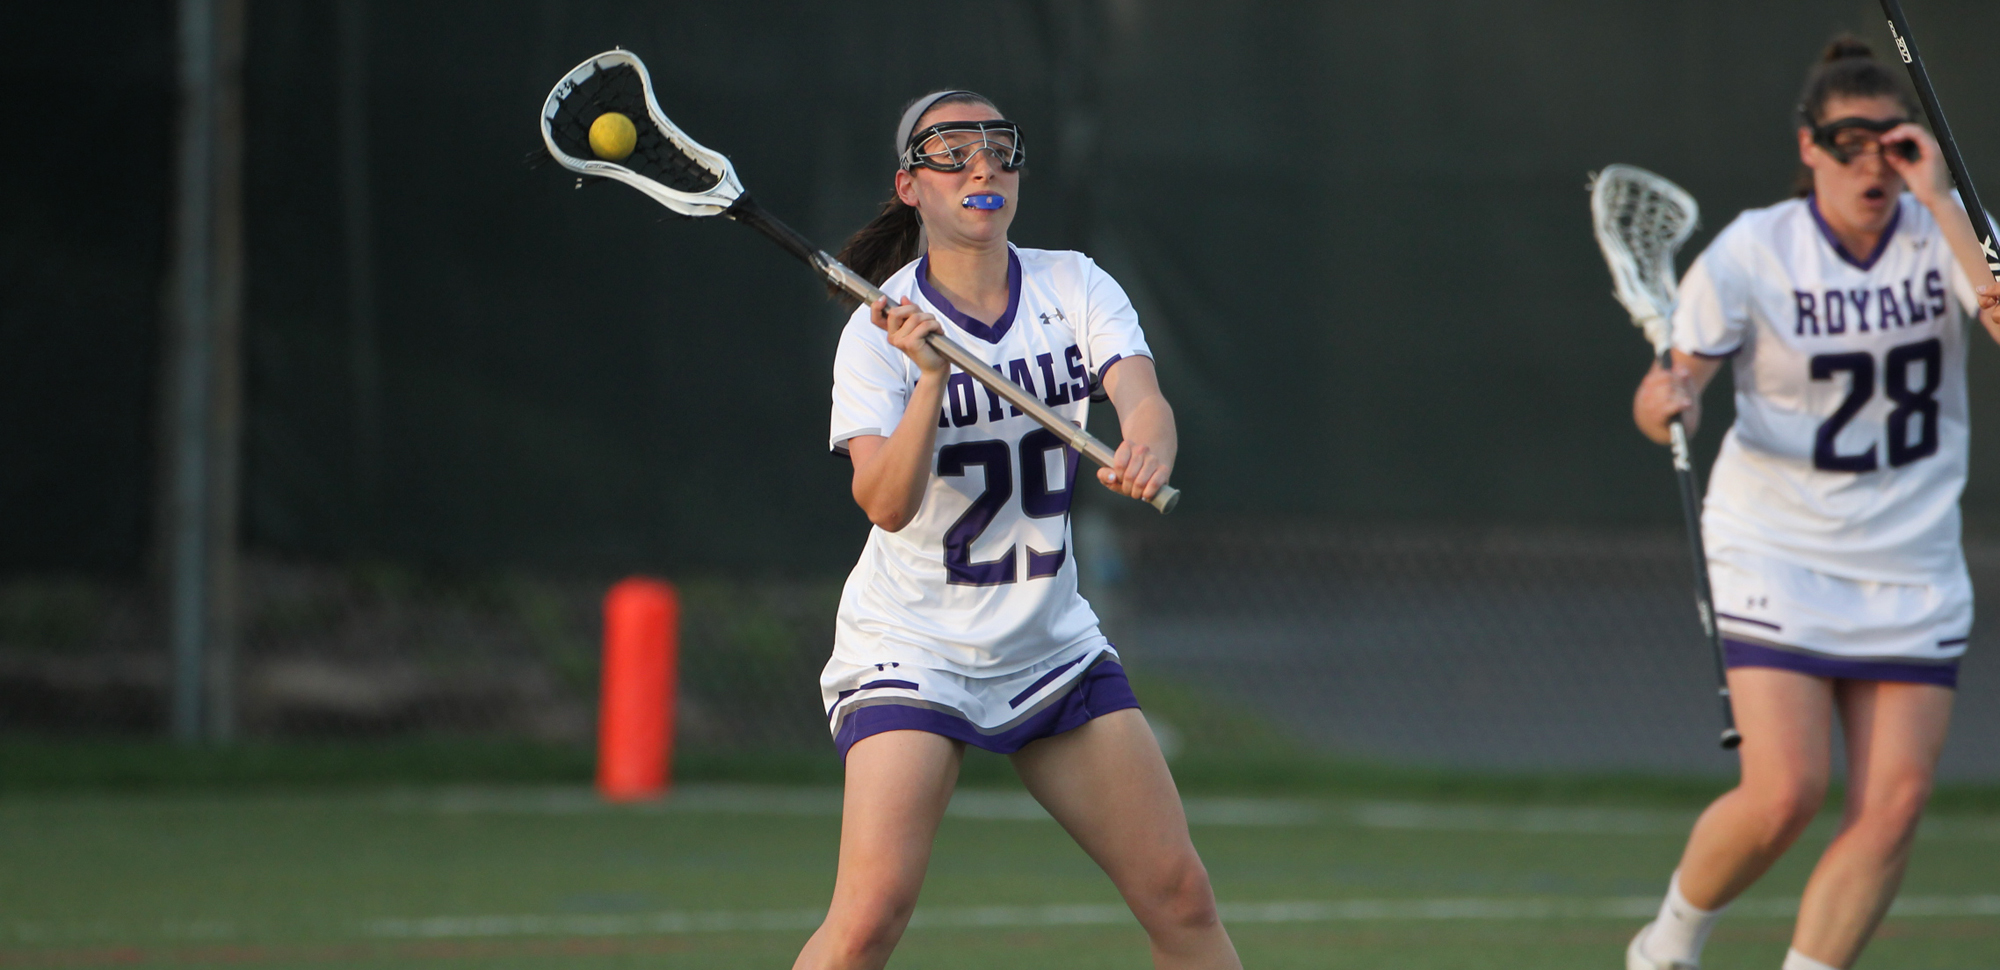 Senior Elena Gallo scored two goals in each half, tallying four on the day in Scranton's 13-5 win at Kean on Saturday.